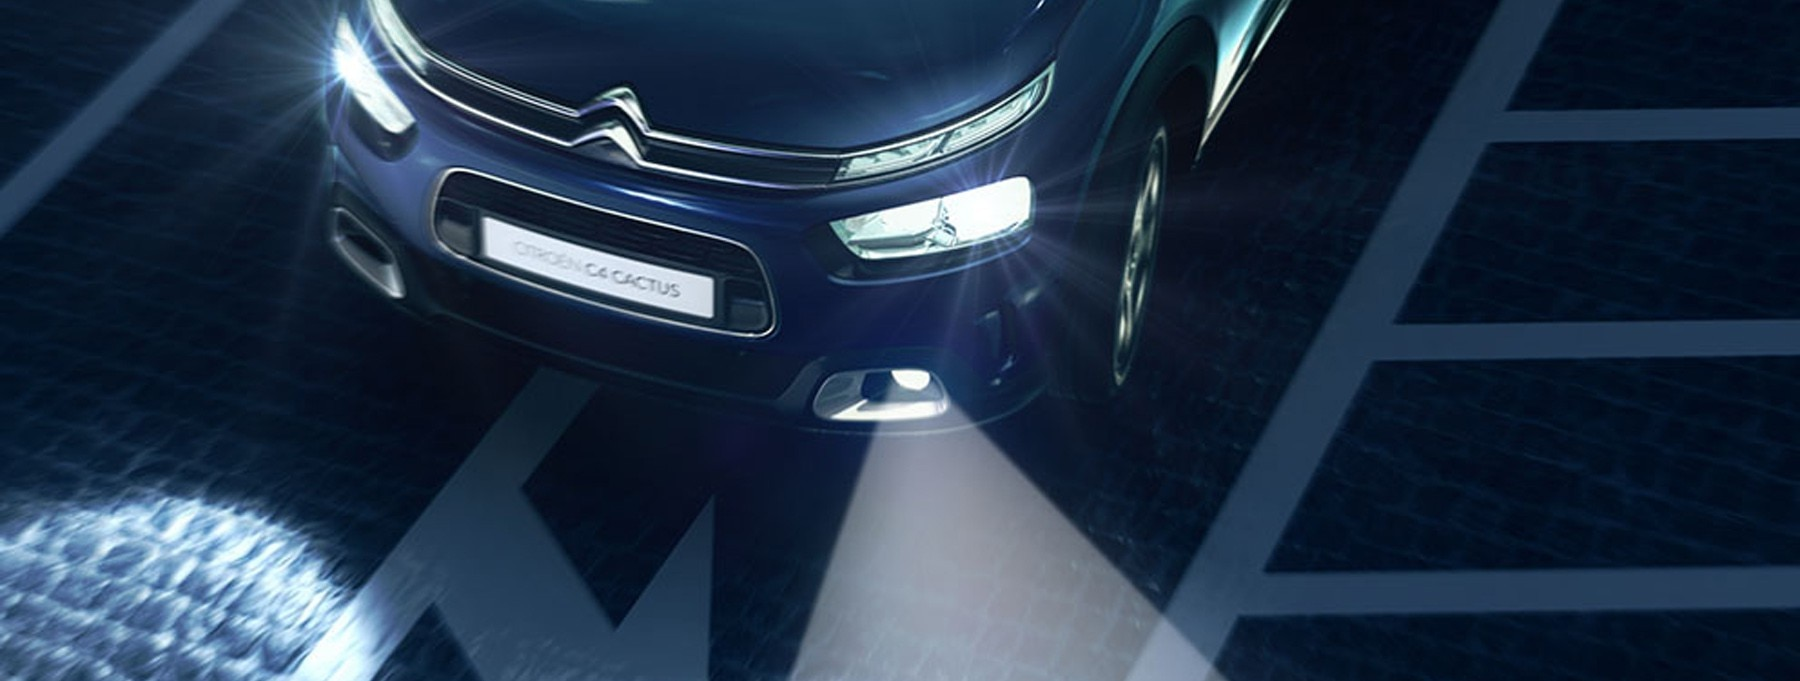 Citroen-Cornering-Light-Function